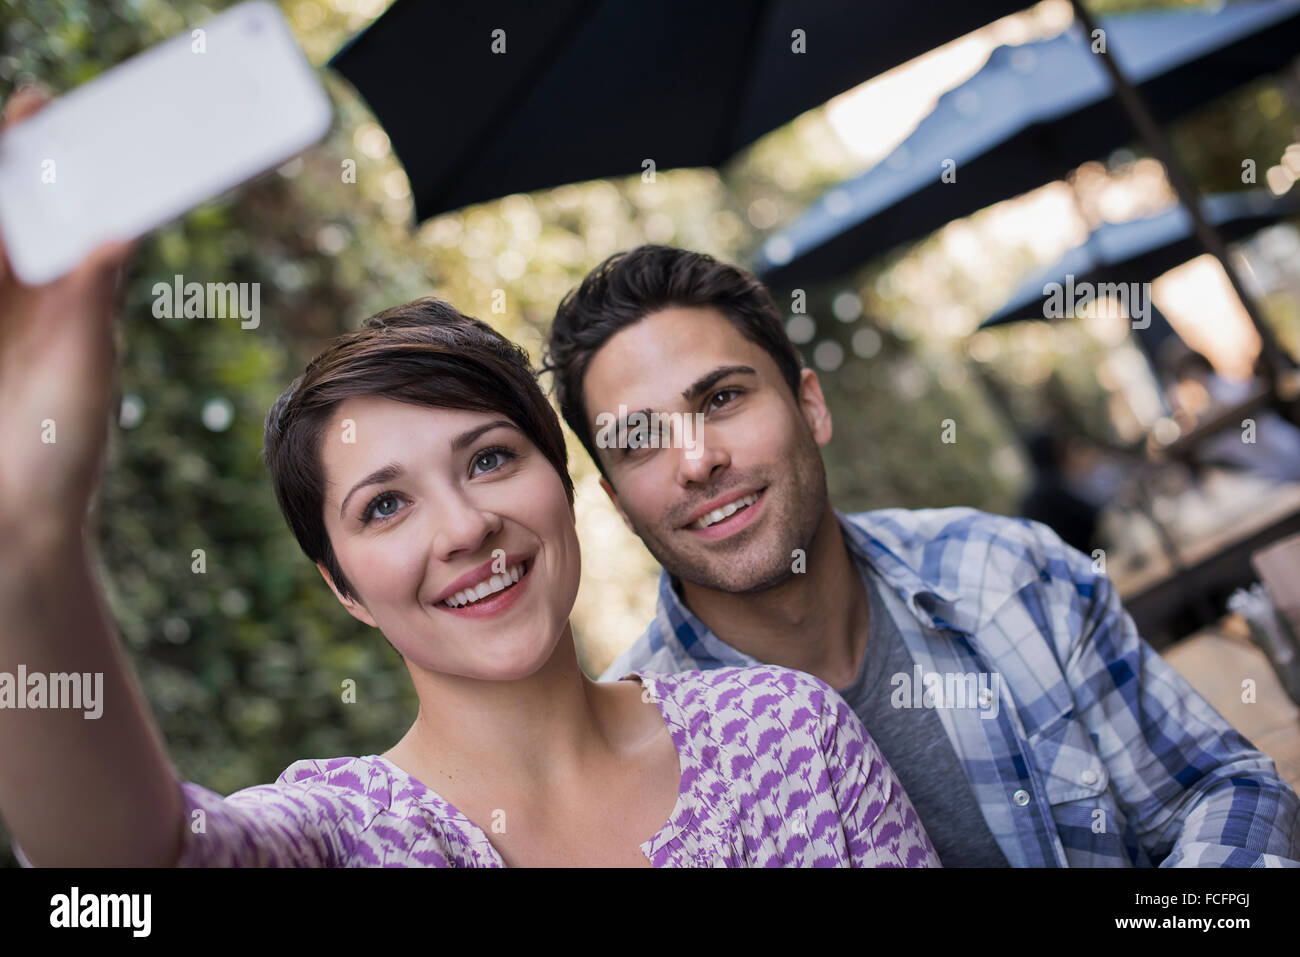 A couple seated at an outdoor city cafe, taking a selfy with a smart phone. - Stock Image